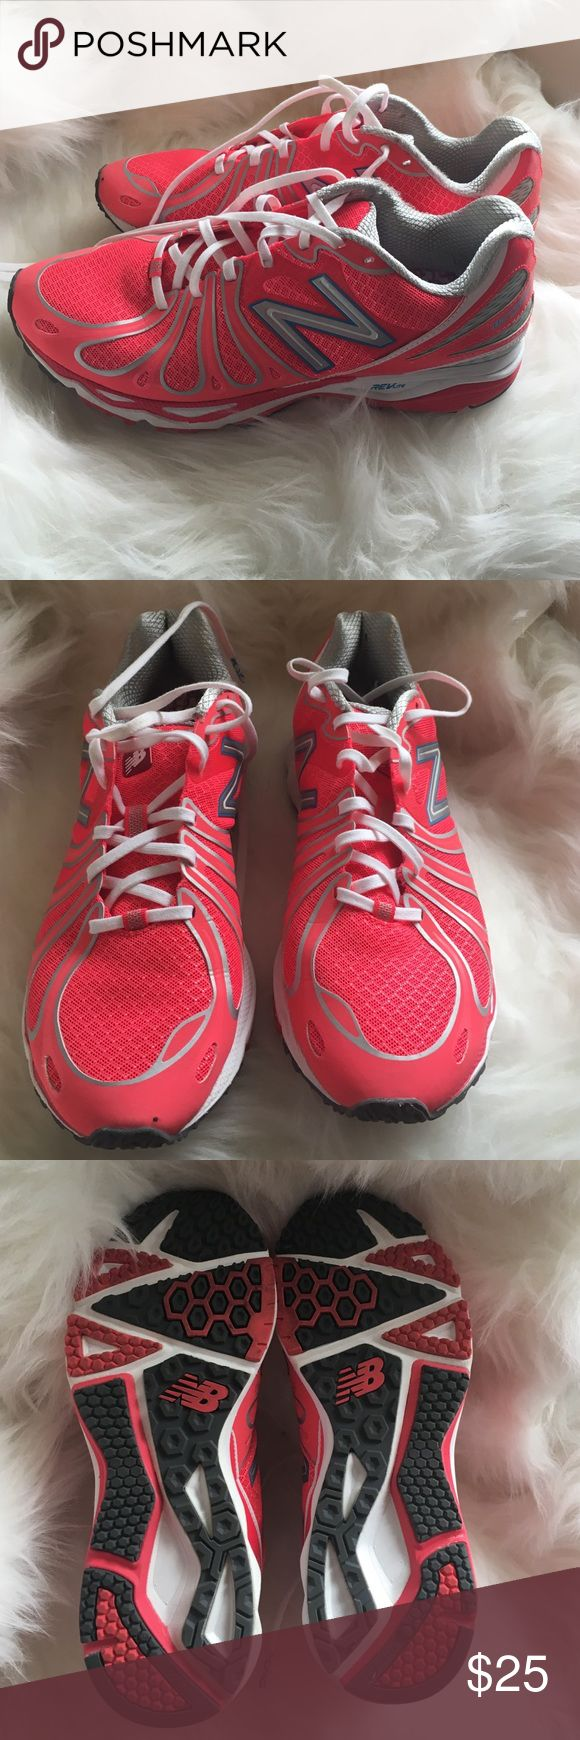 Used Once! New Balance Sneakers Used Once and it was indoors on my treadmill. New Balance Sneakers Barringer 890 collaboration with Susan G Komen for the cure. They retail for over $70. Super lite Sneakers. New Balance Shoes Sneakers